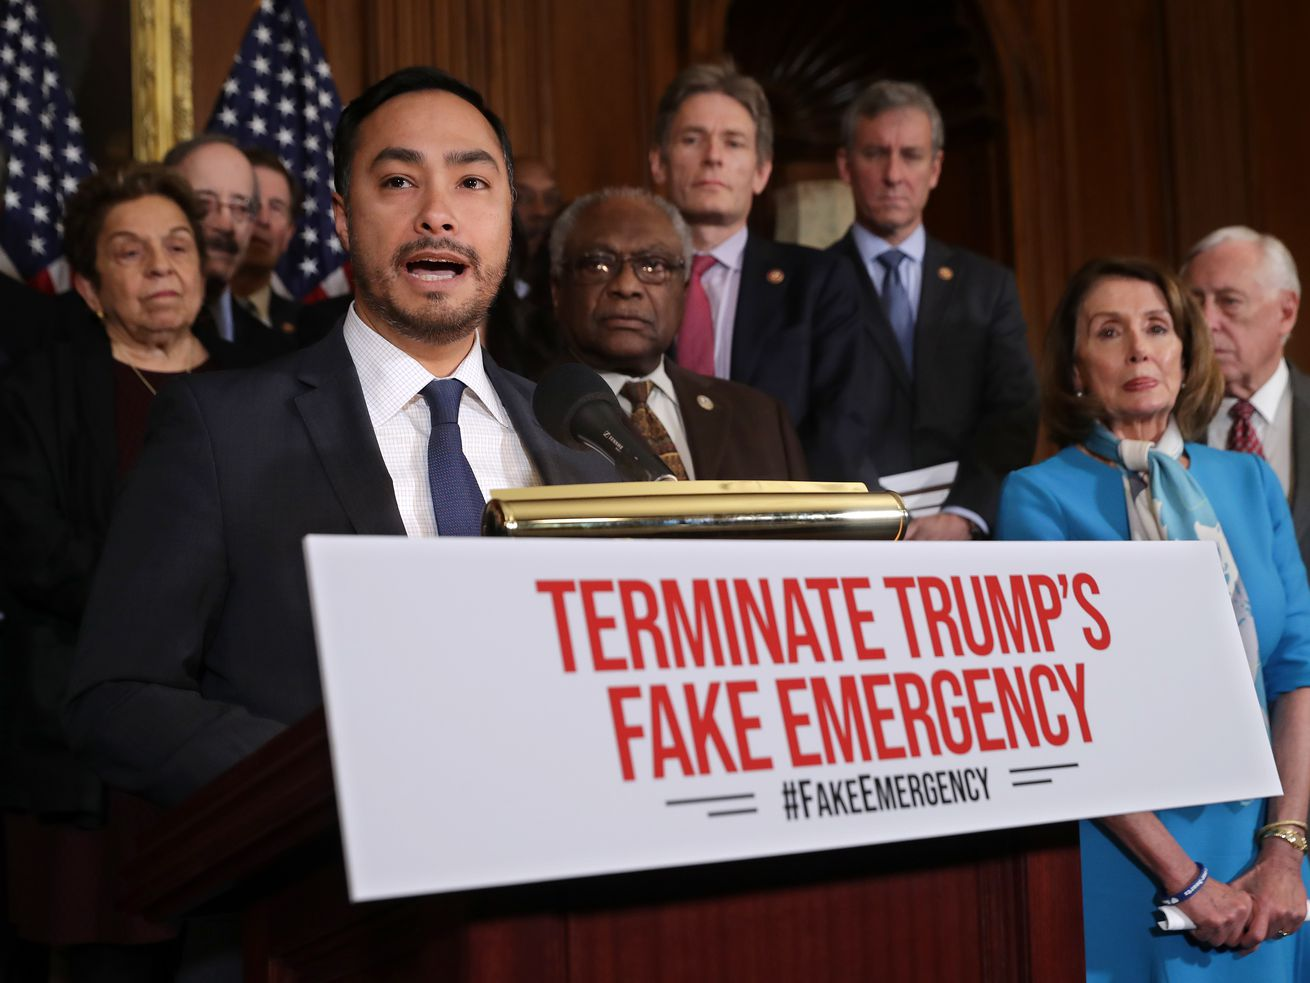 Rep. Joaquin Castro speaks at a news conference in Washington, DC.